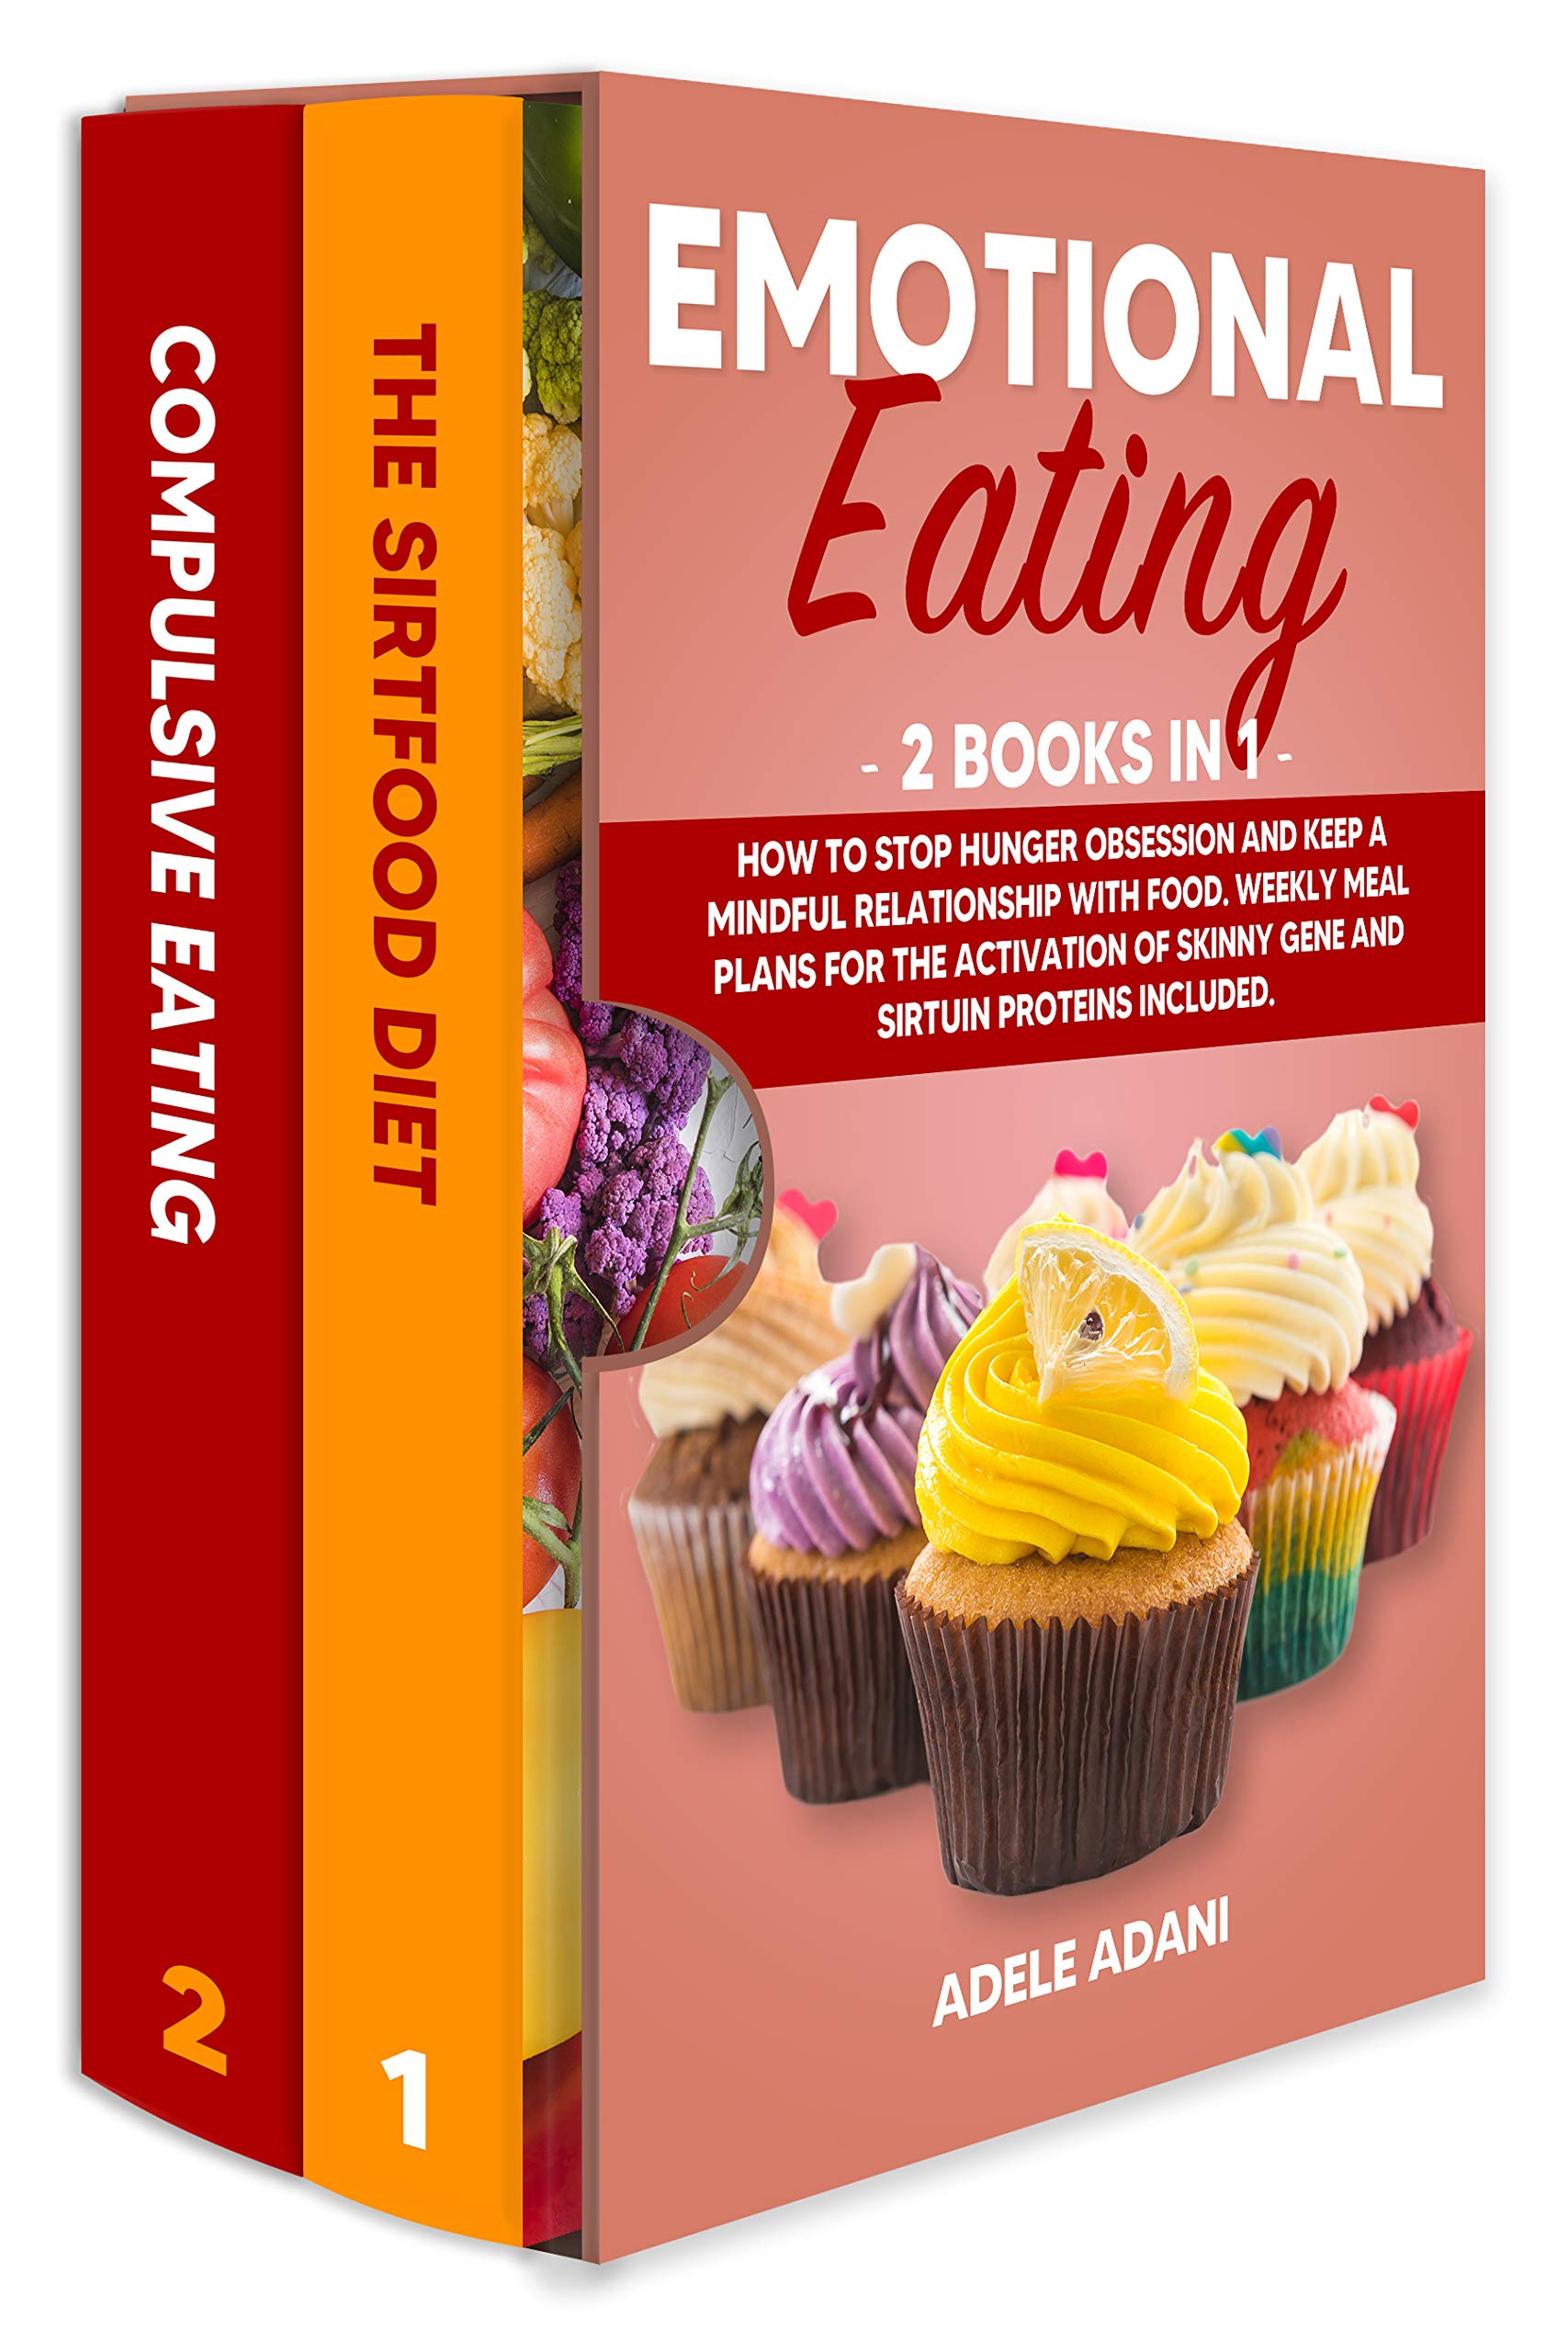 EMOTIONAL EATING: 2 books in 1: How to Stop Hunger Obsession and keep a Mindful Relationship with Food. Weekly Meal Plans for the Activation of Skinny Gene and Sirtuin Proteins Included